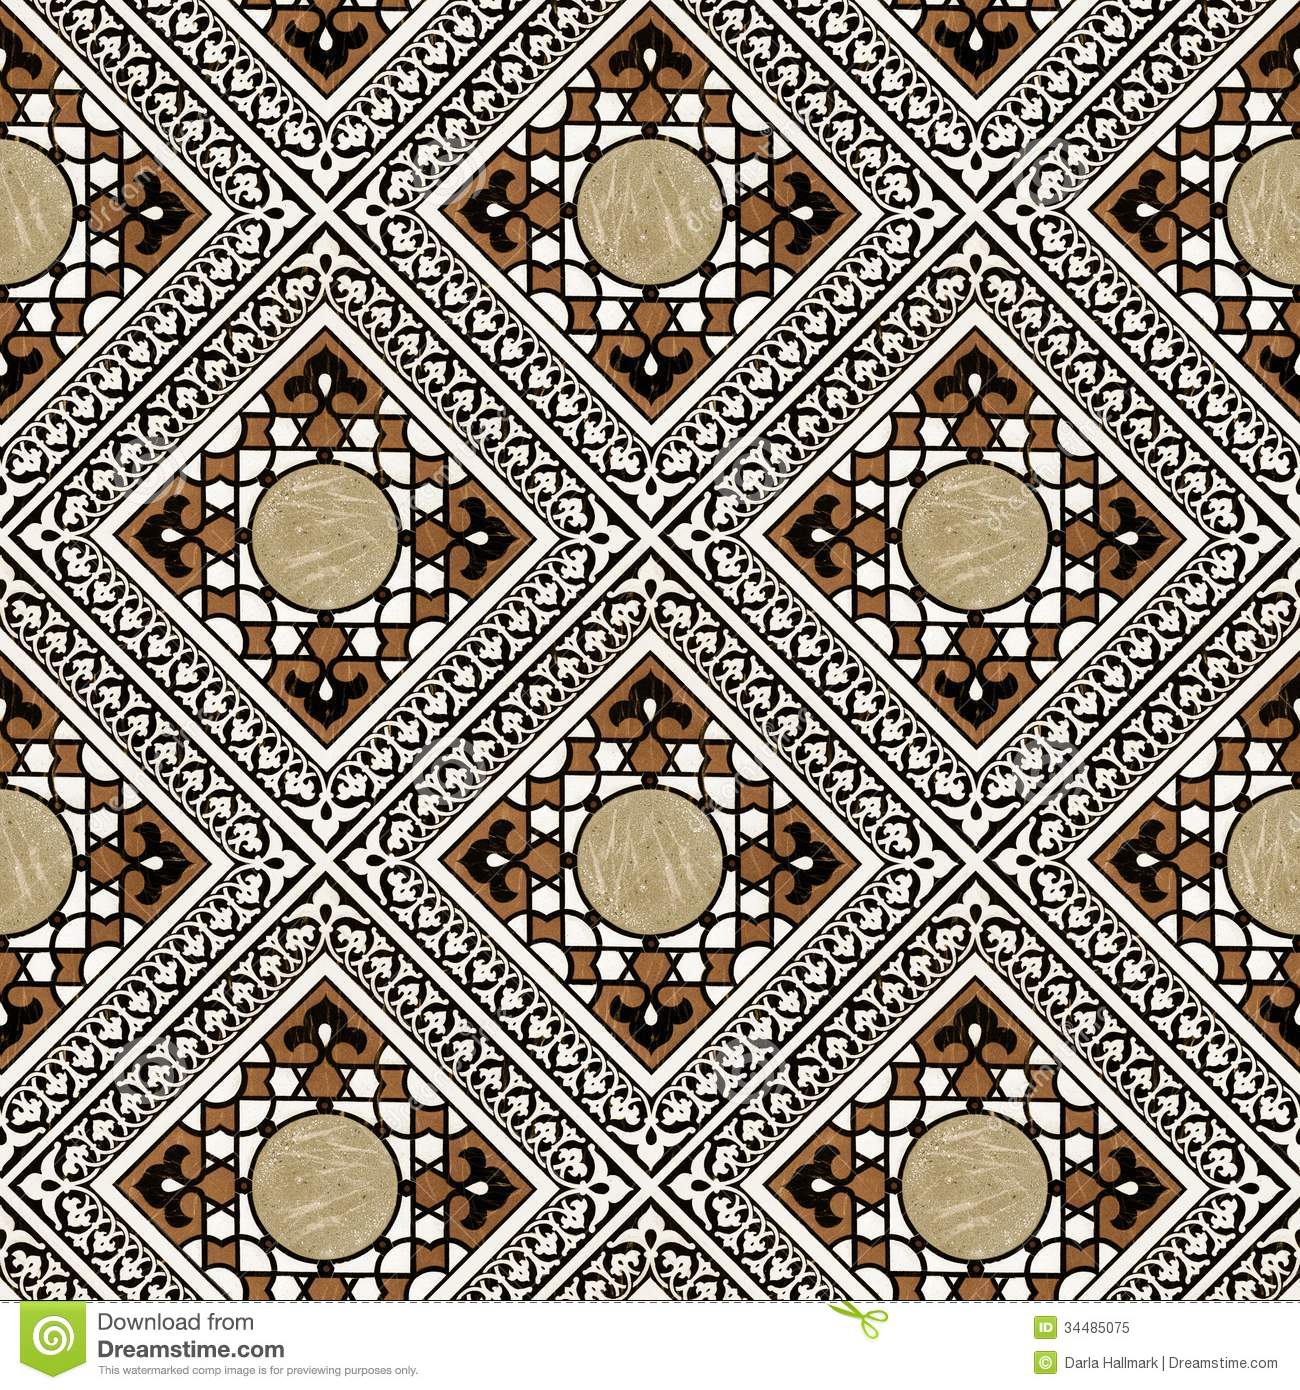 Free Download Wallpaper Tile Designs Submited Images